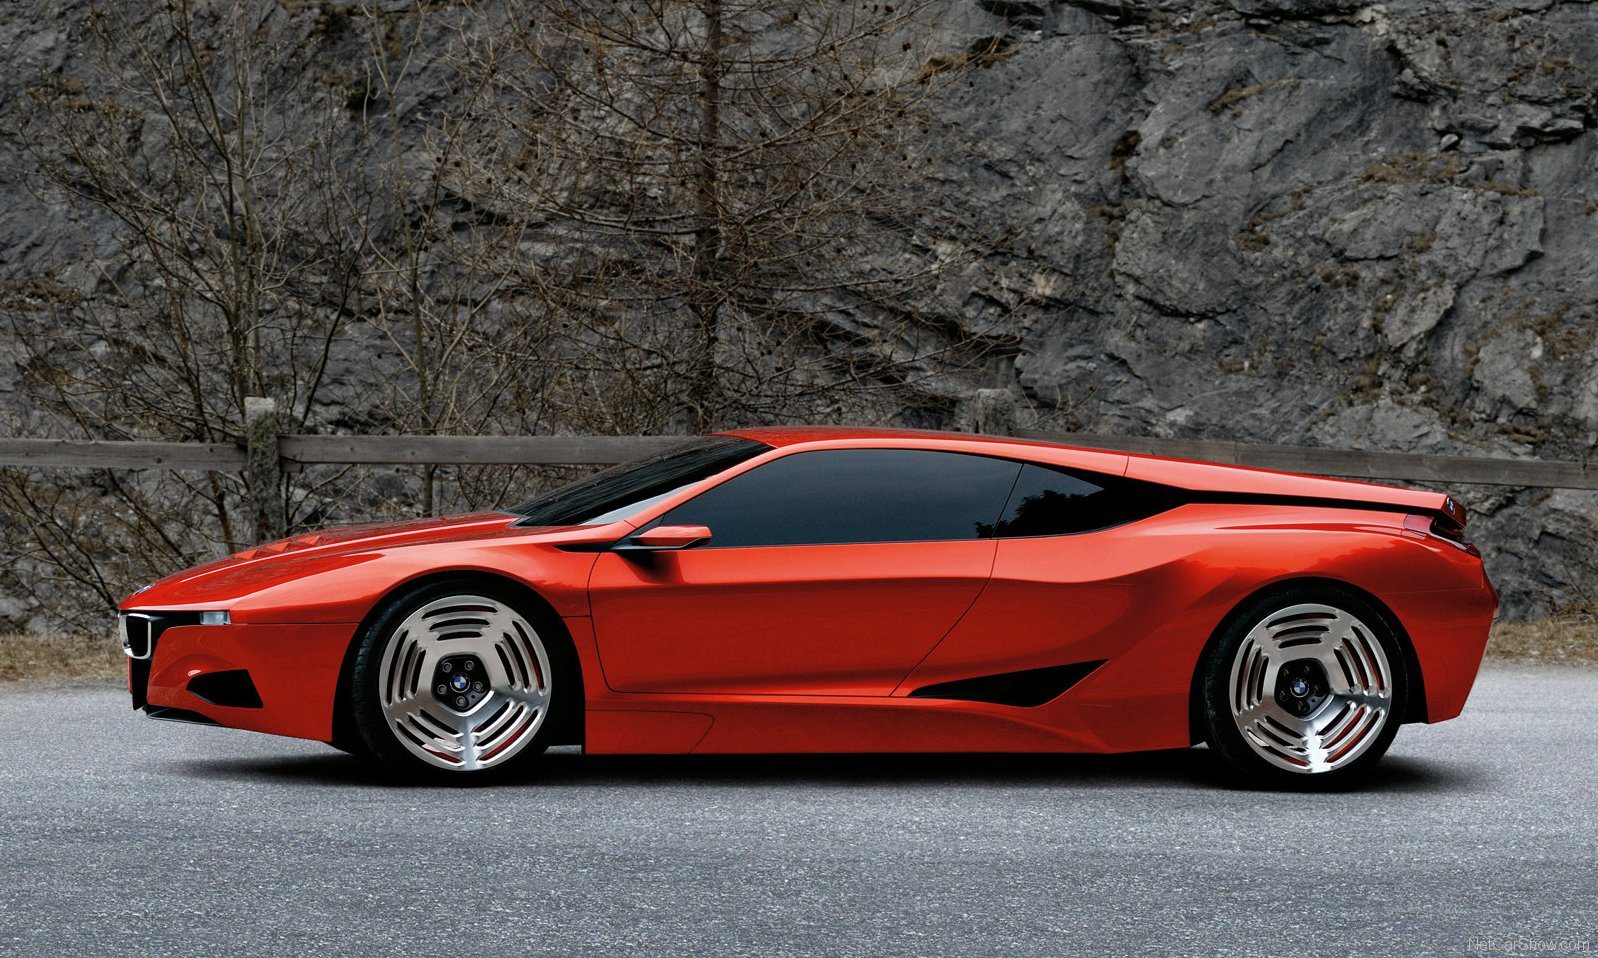 Supercars Then and Now - 1980 BMW M1 versus 2008 BMW M1 Hommage